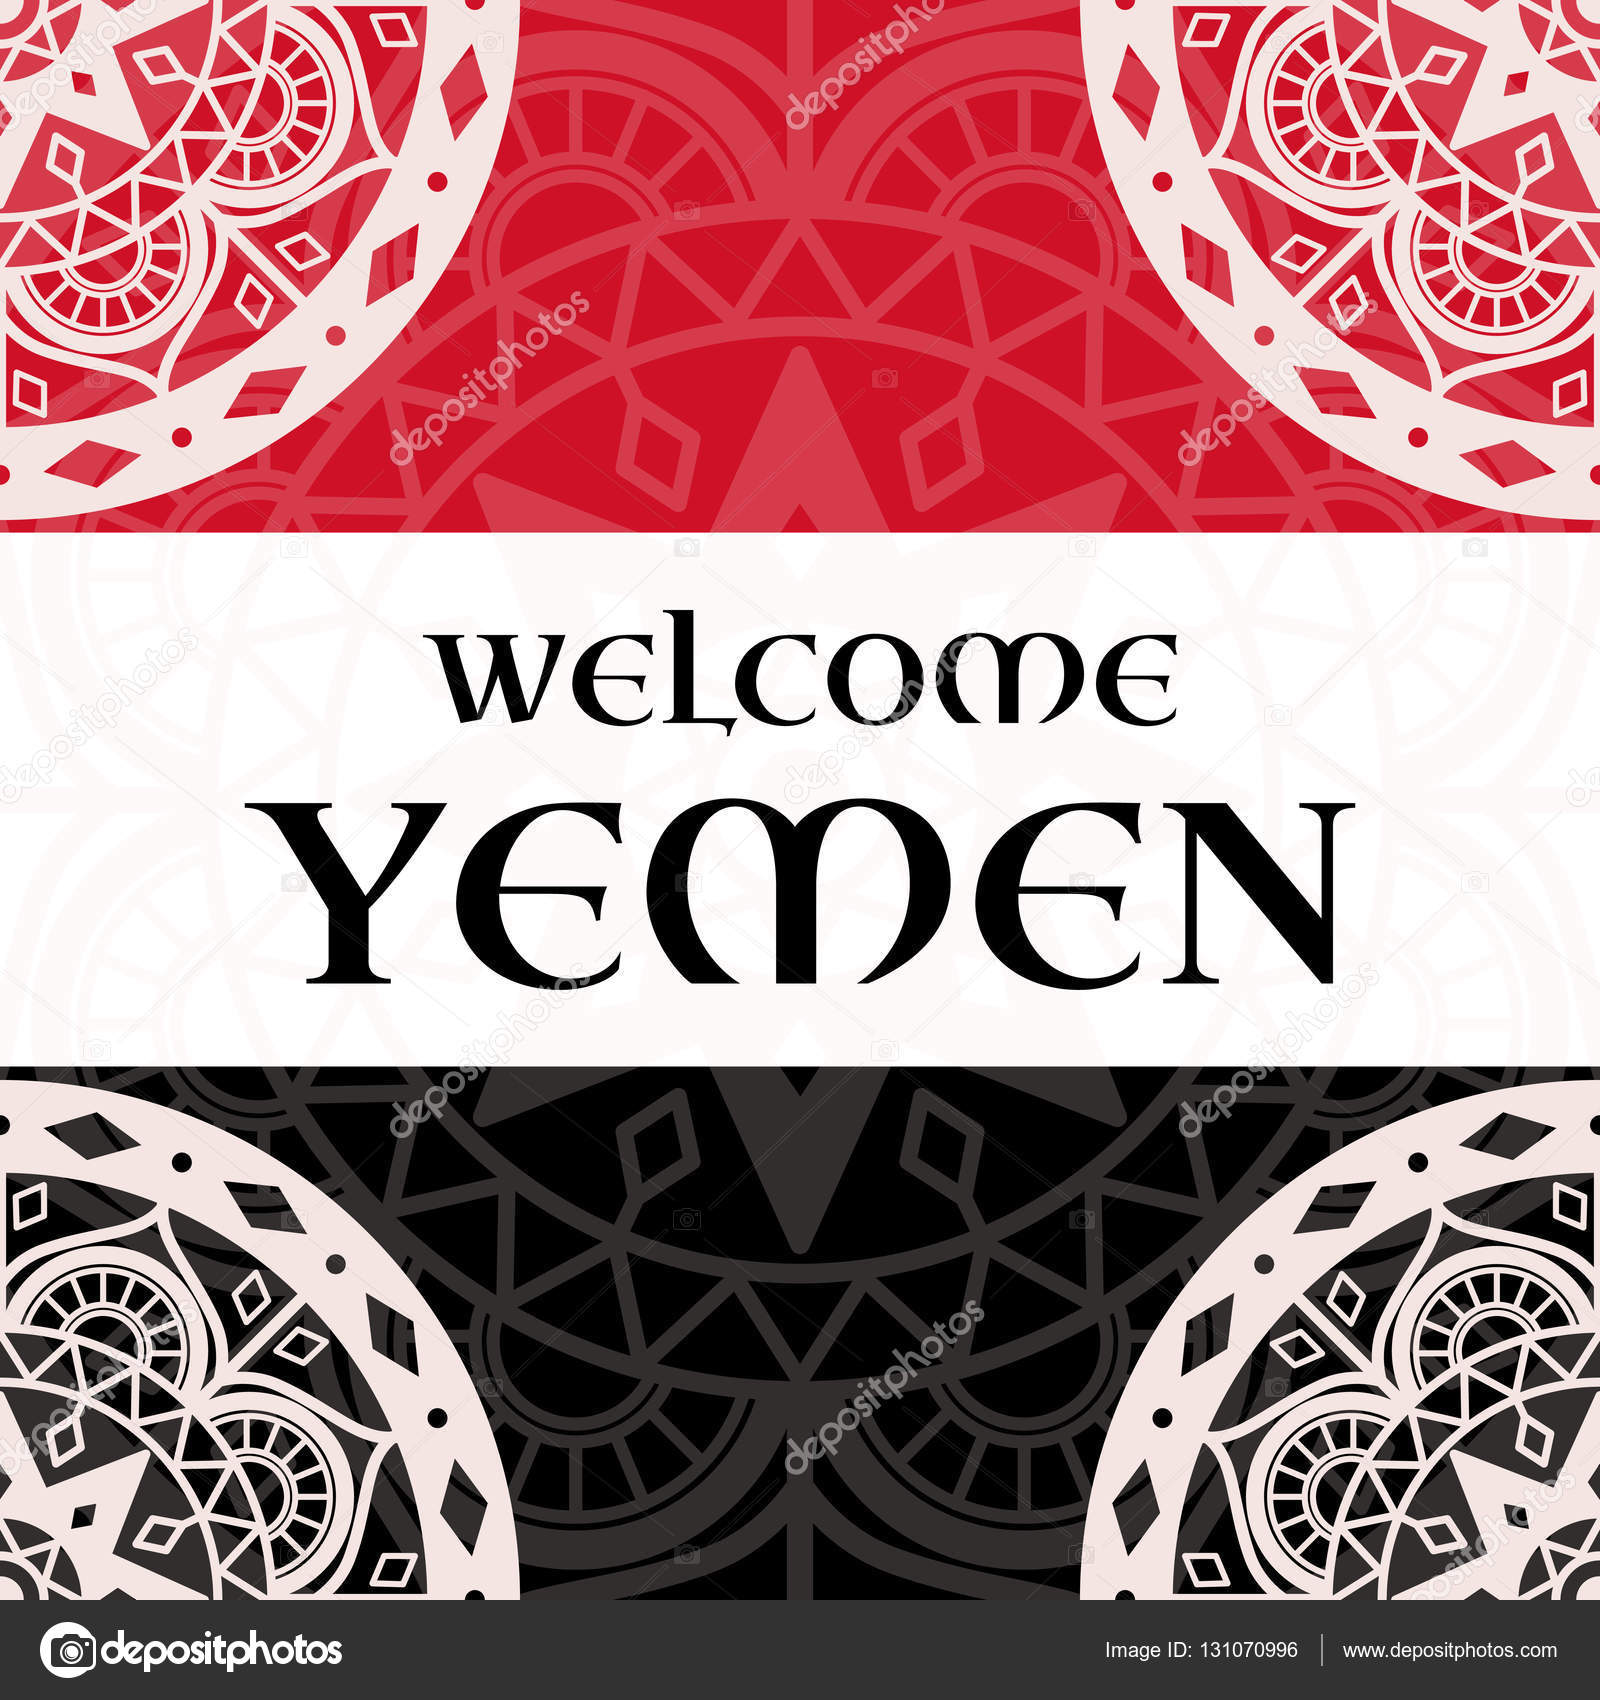 welcome to yemen vector illustration travel design vector illustration travel design or nts on yemen colors flag background concept for tourism banner cover information card or flyer template